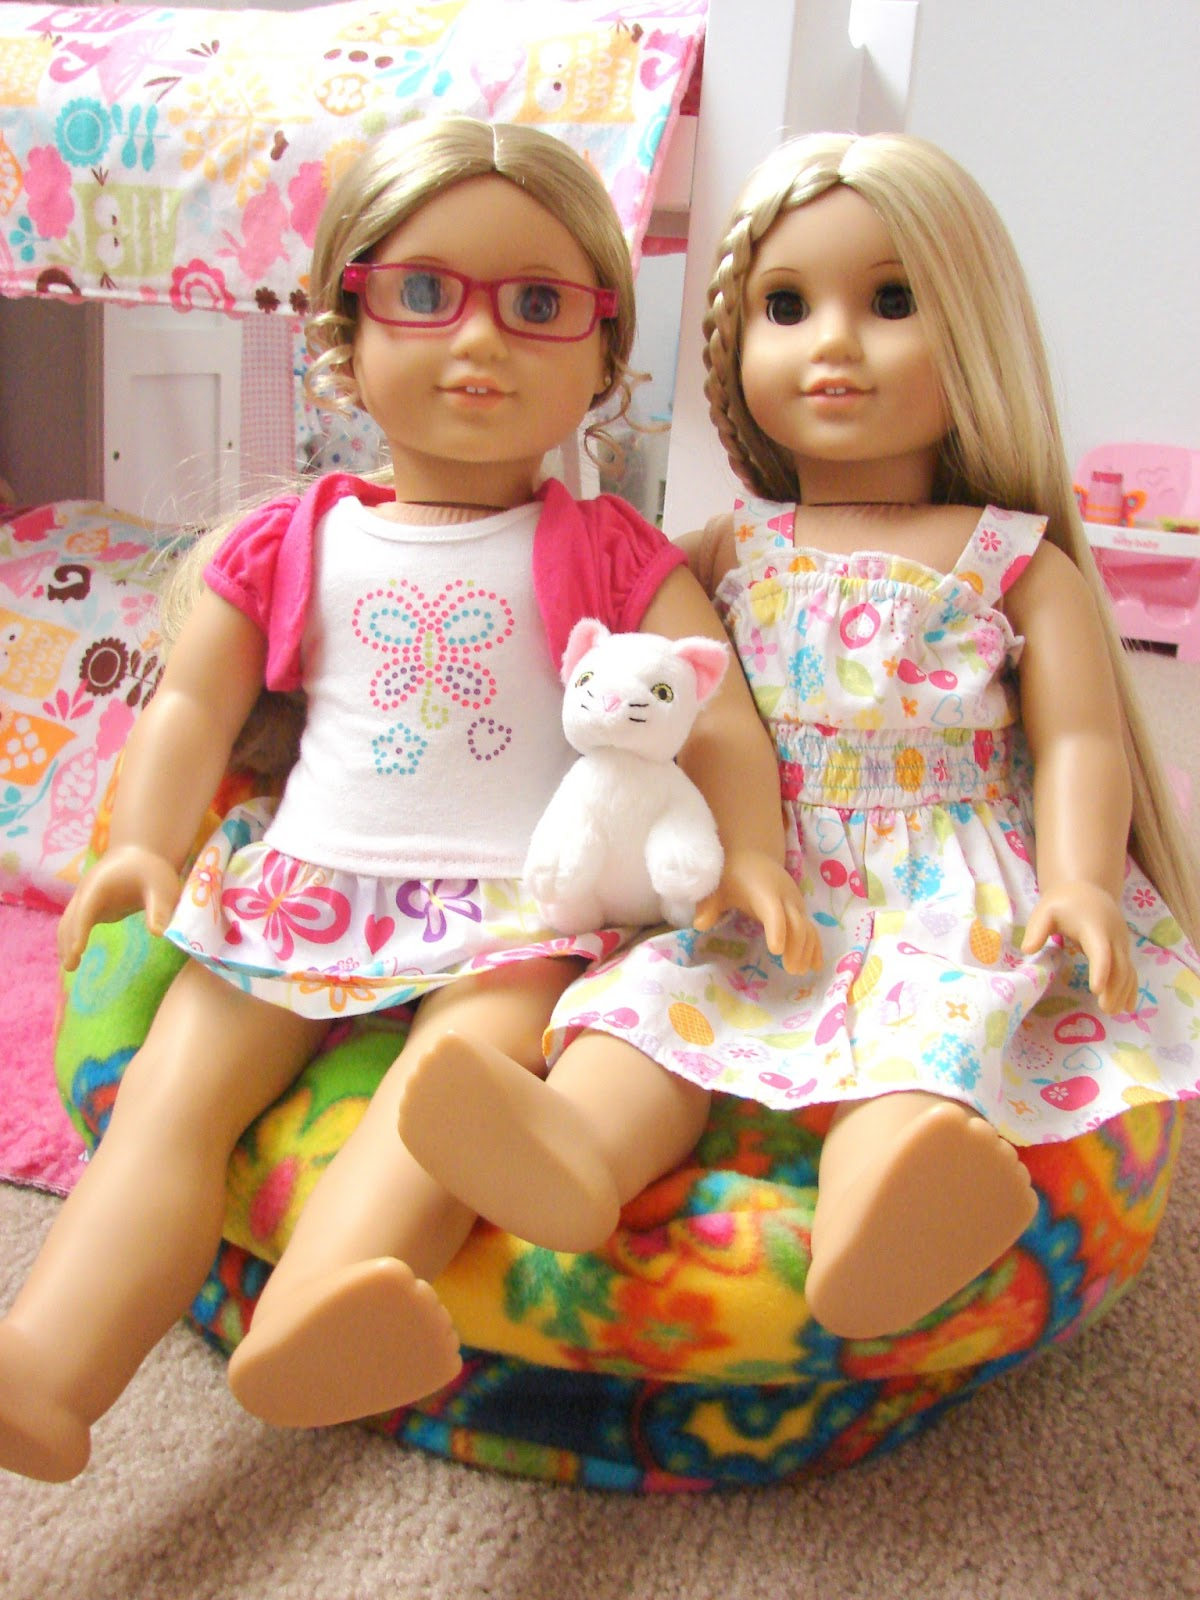 Remarkable American Girl Doll Play Product Review Ahhprods Lil Me Gmtry Best Dining Table And Chair Ideas Images Gmtryco